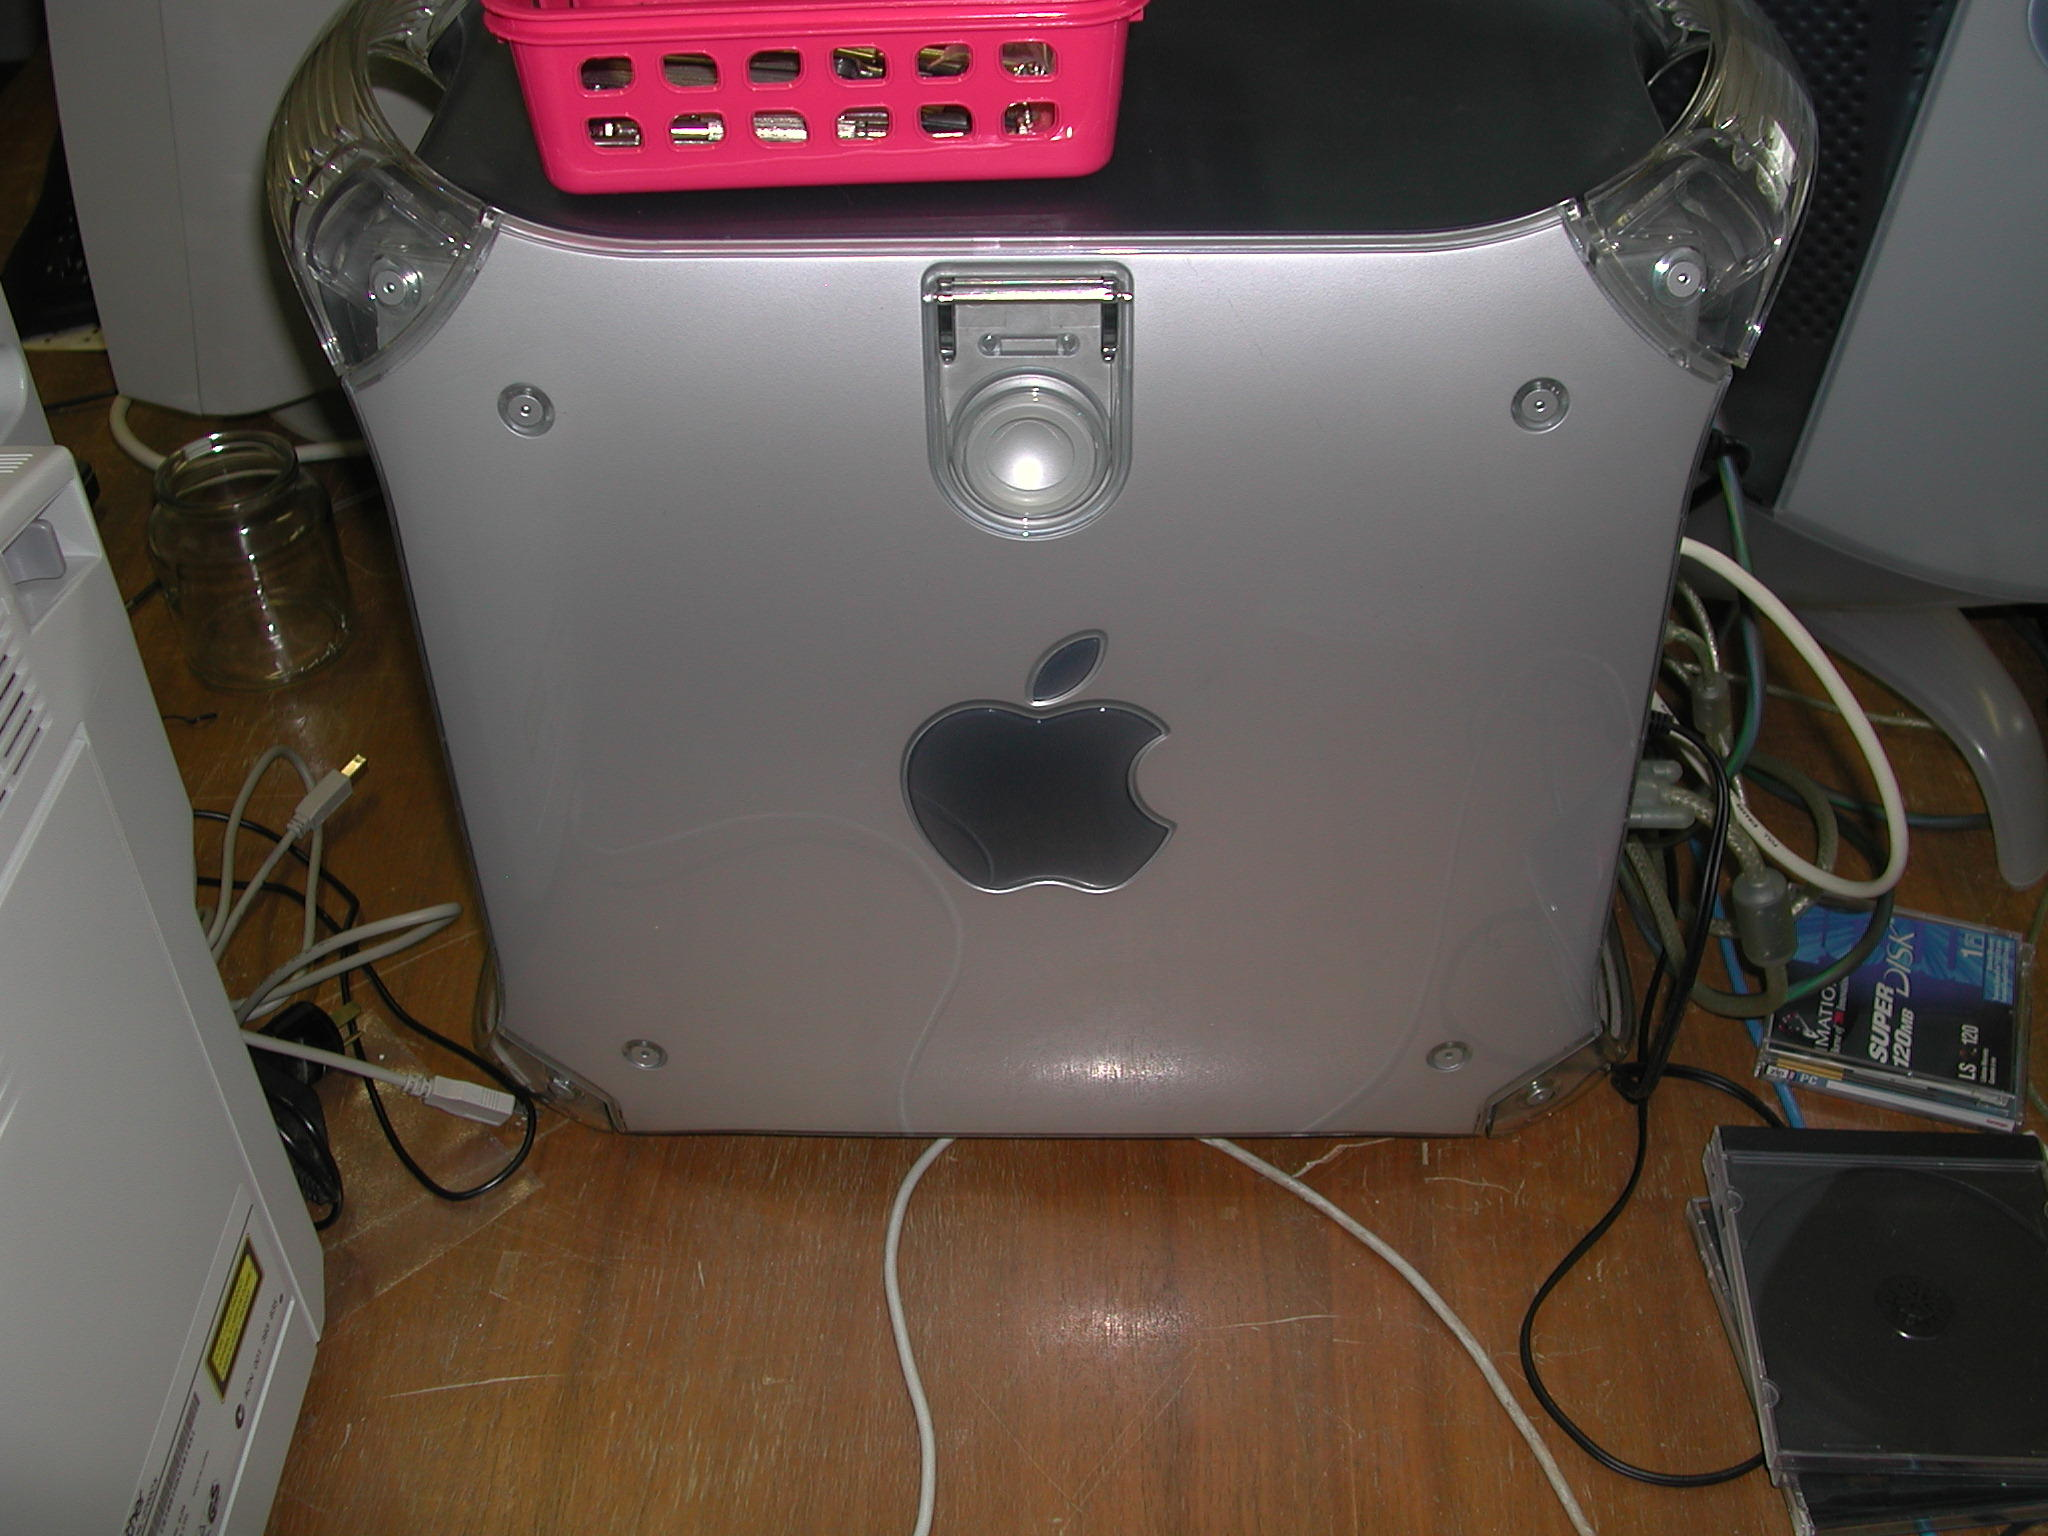 This should be powermac-1.jpeg.  Is it missing?